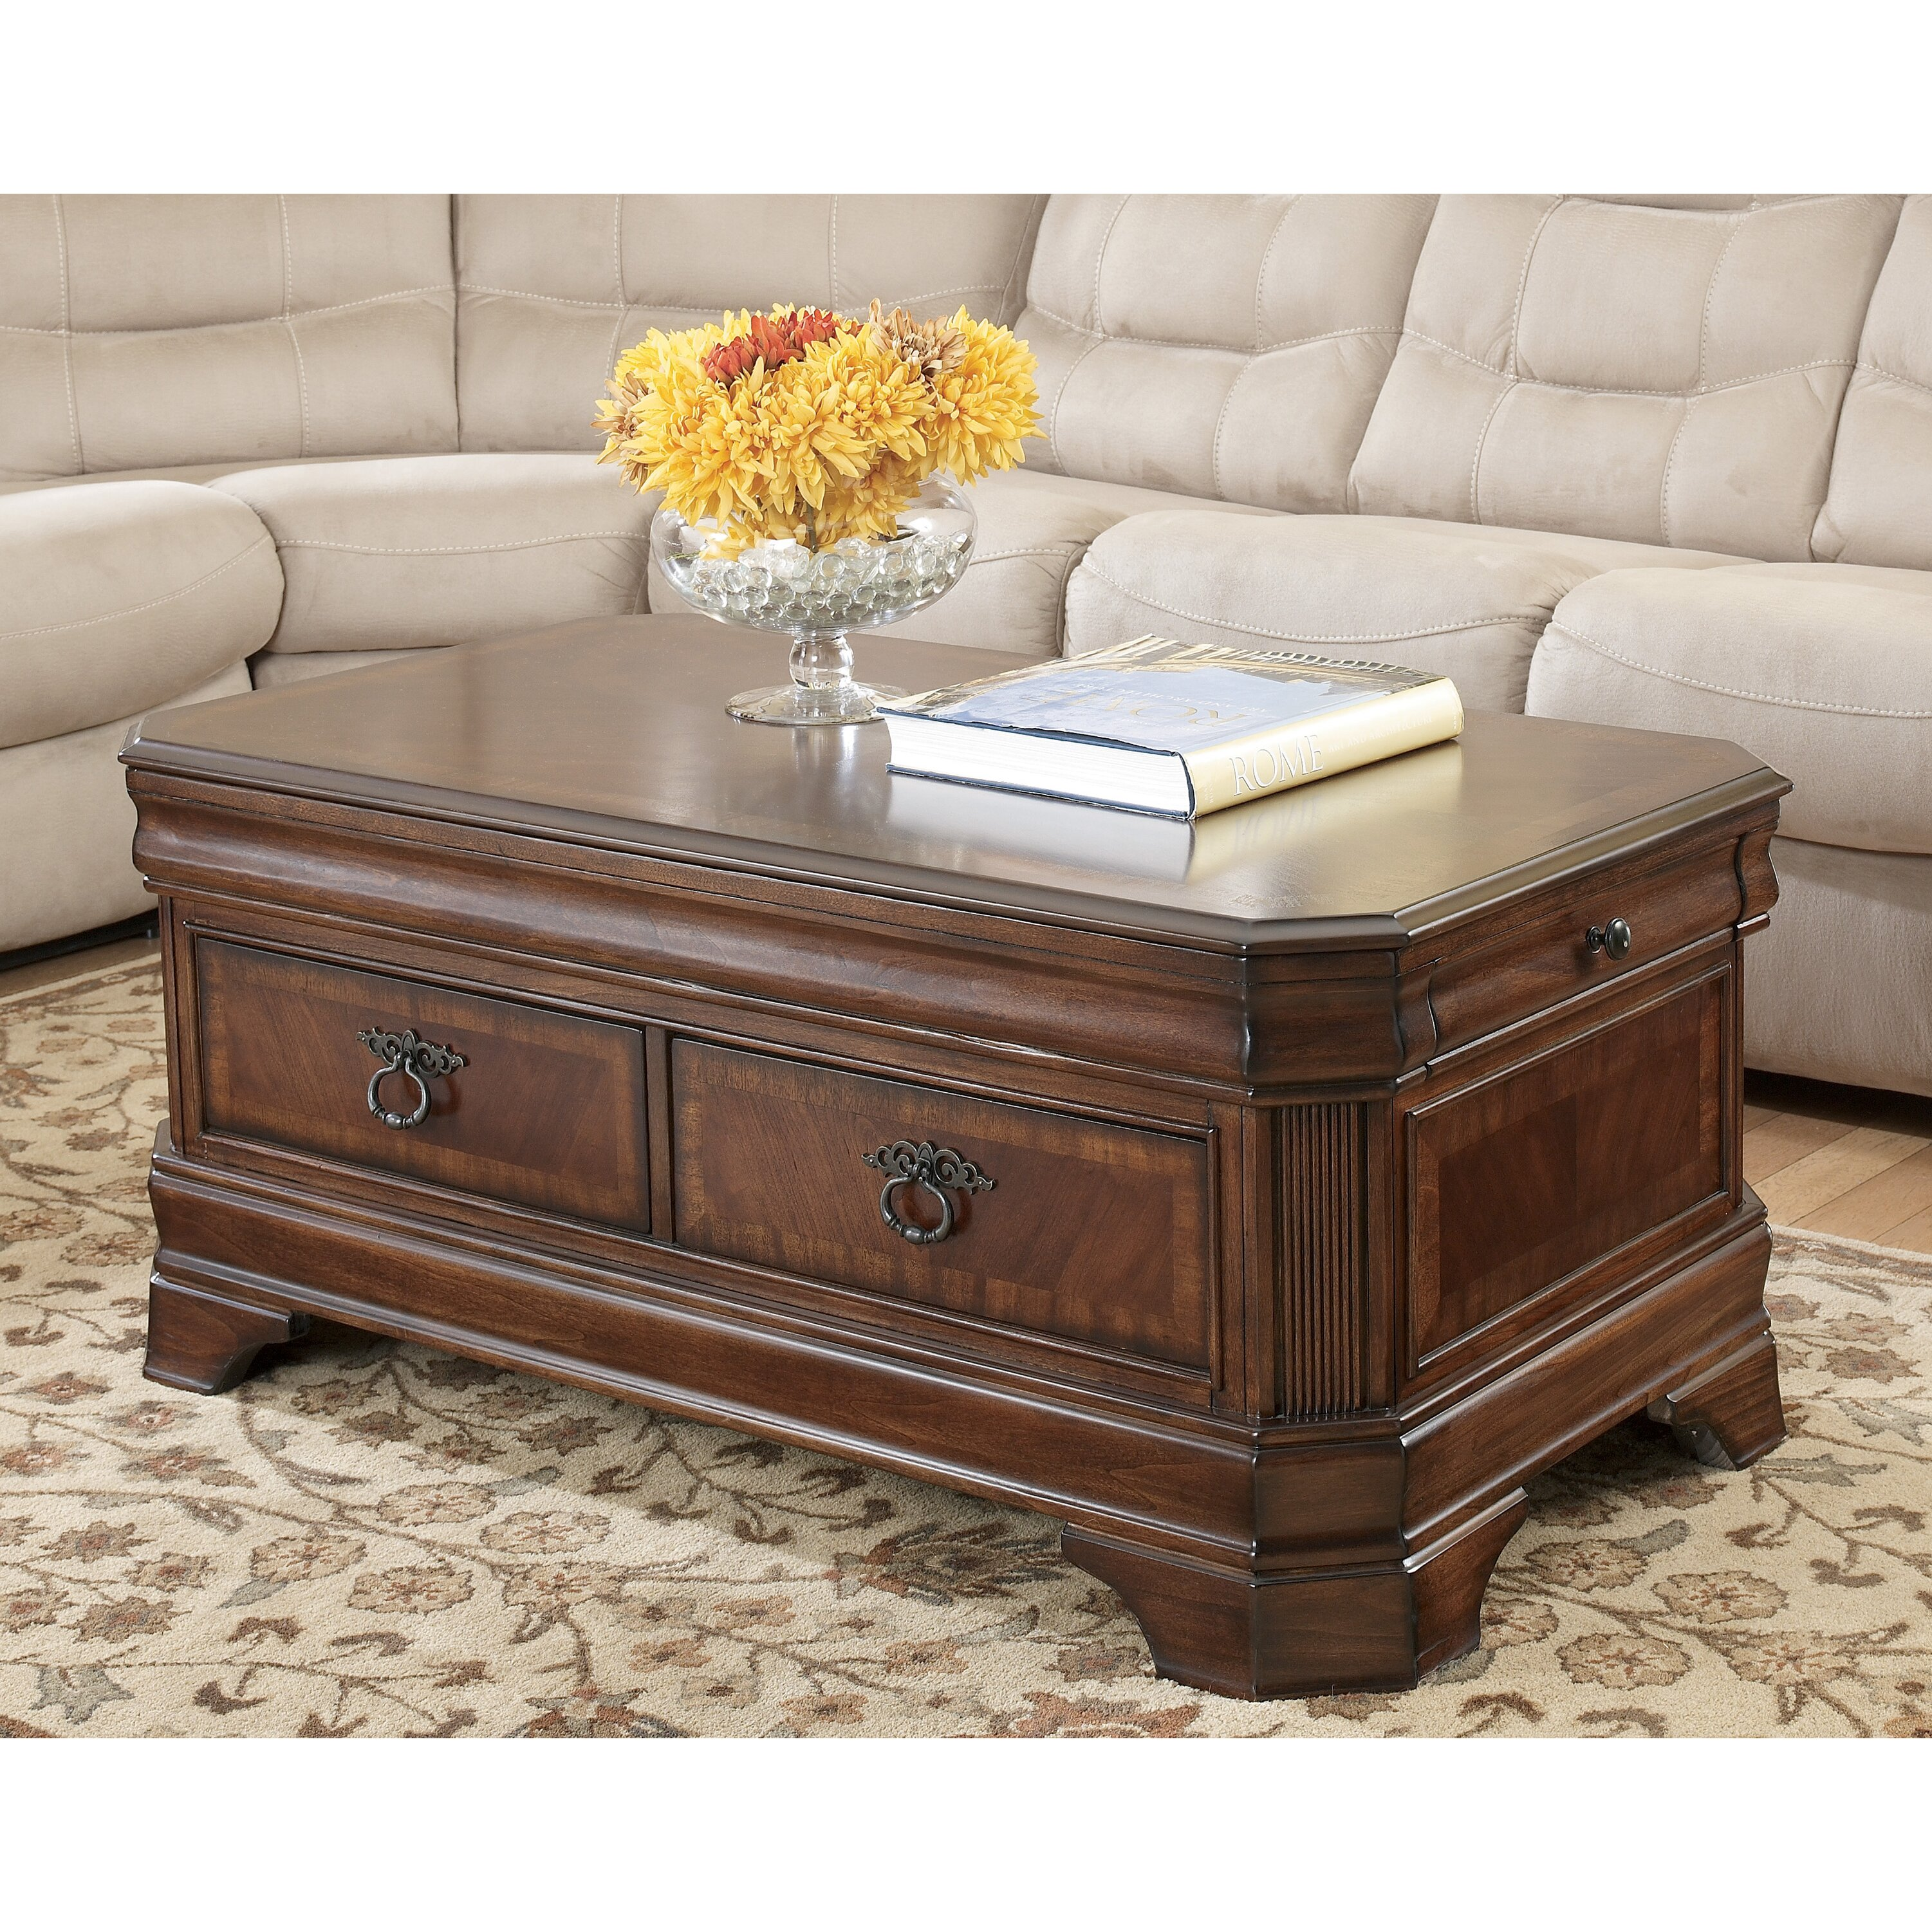 Dual Lift Top Coffee Table Darby Home Co Busse Trunk Coffee Table With Lift Top Reviews